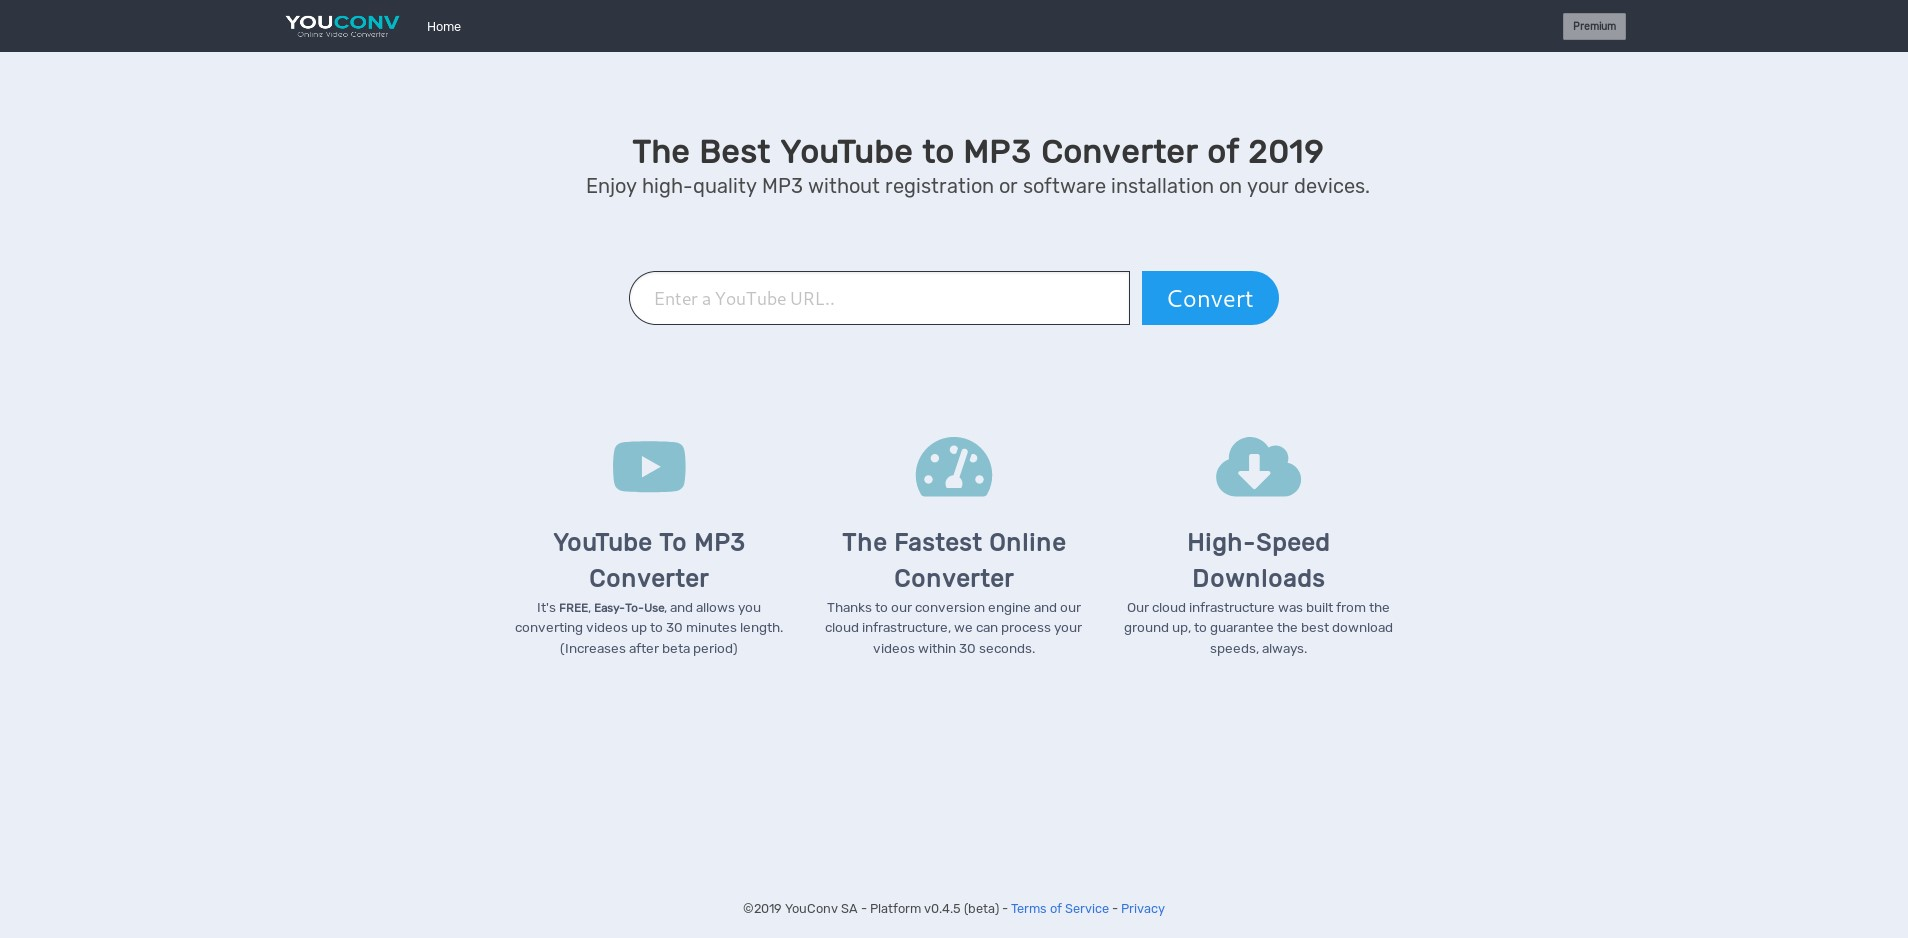 YouConv - YouTube to MP3 Converter Alternatives and Similar